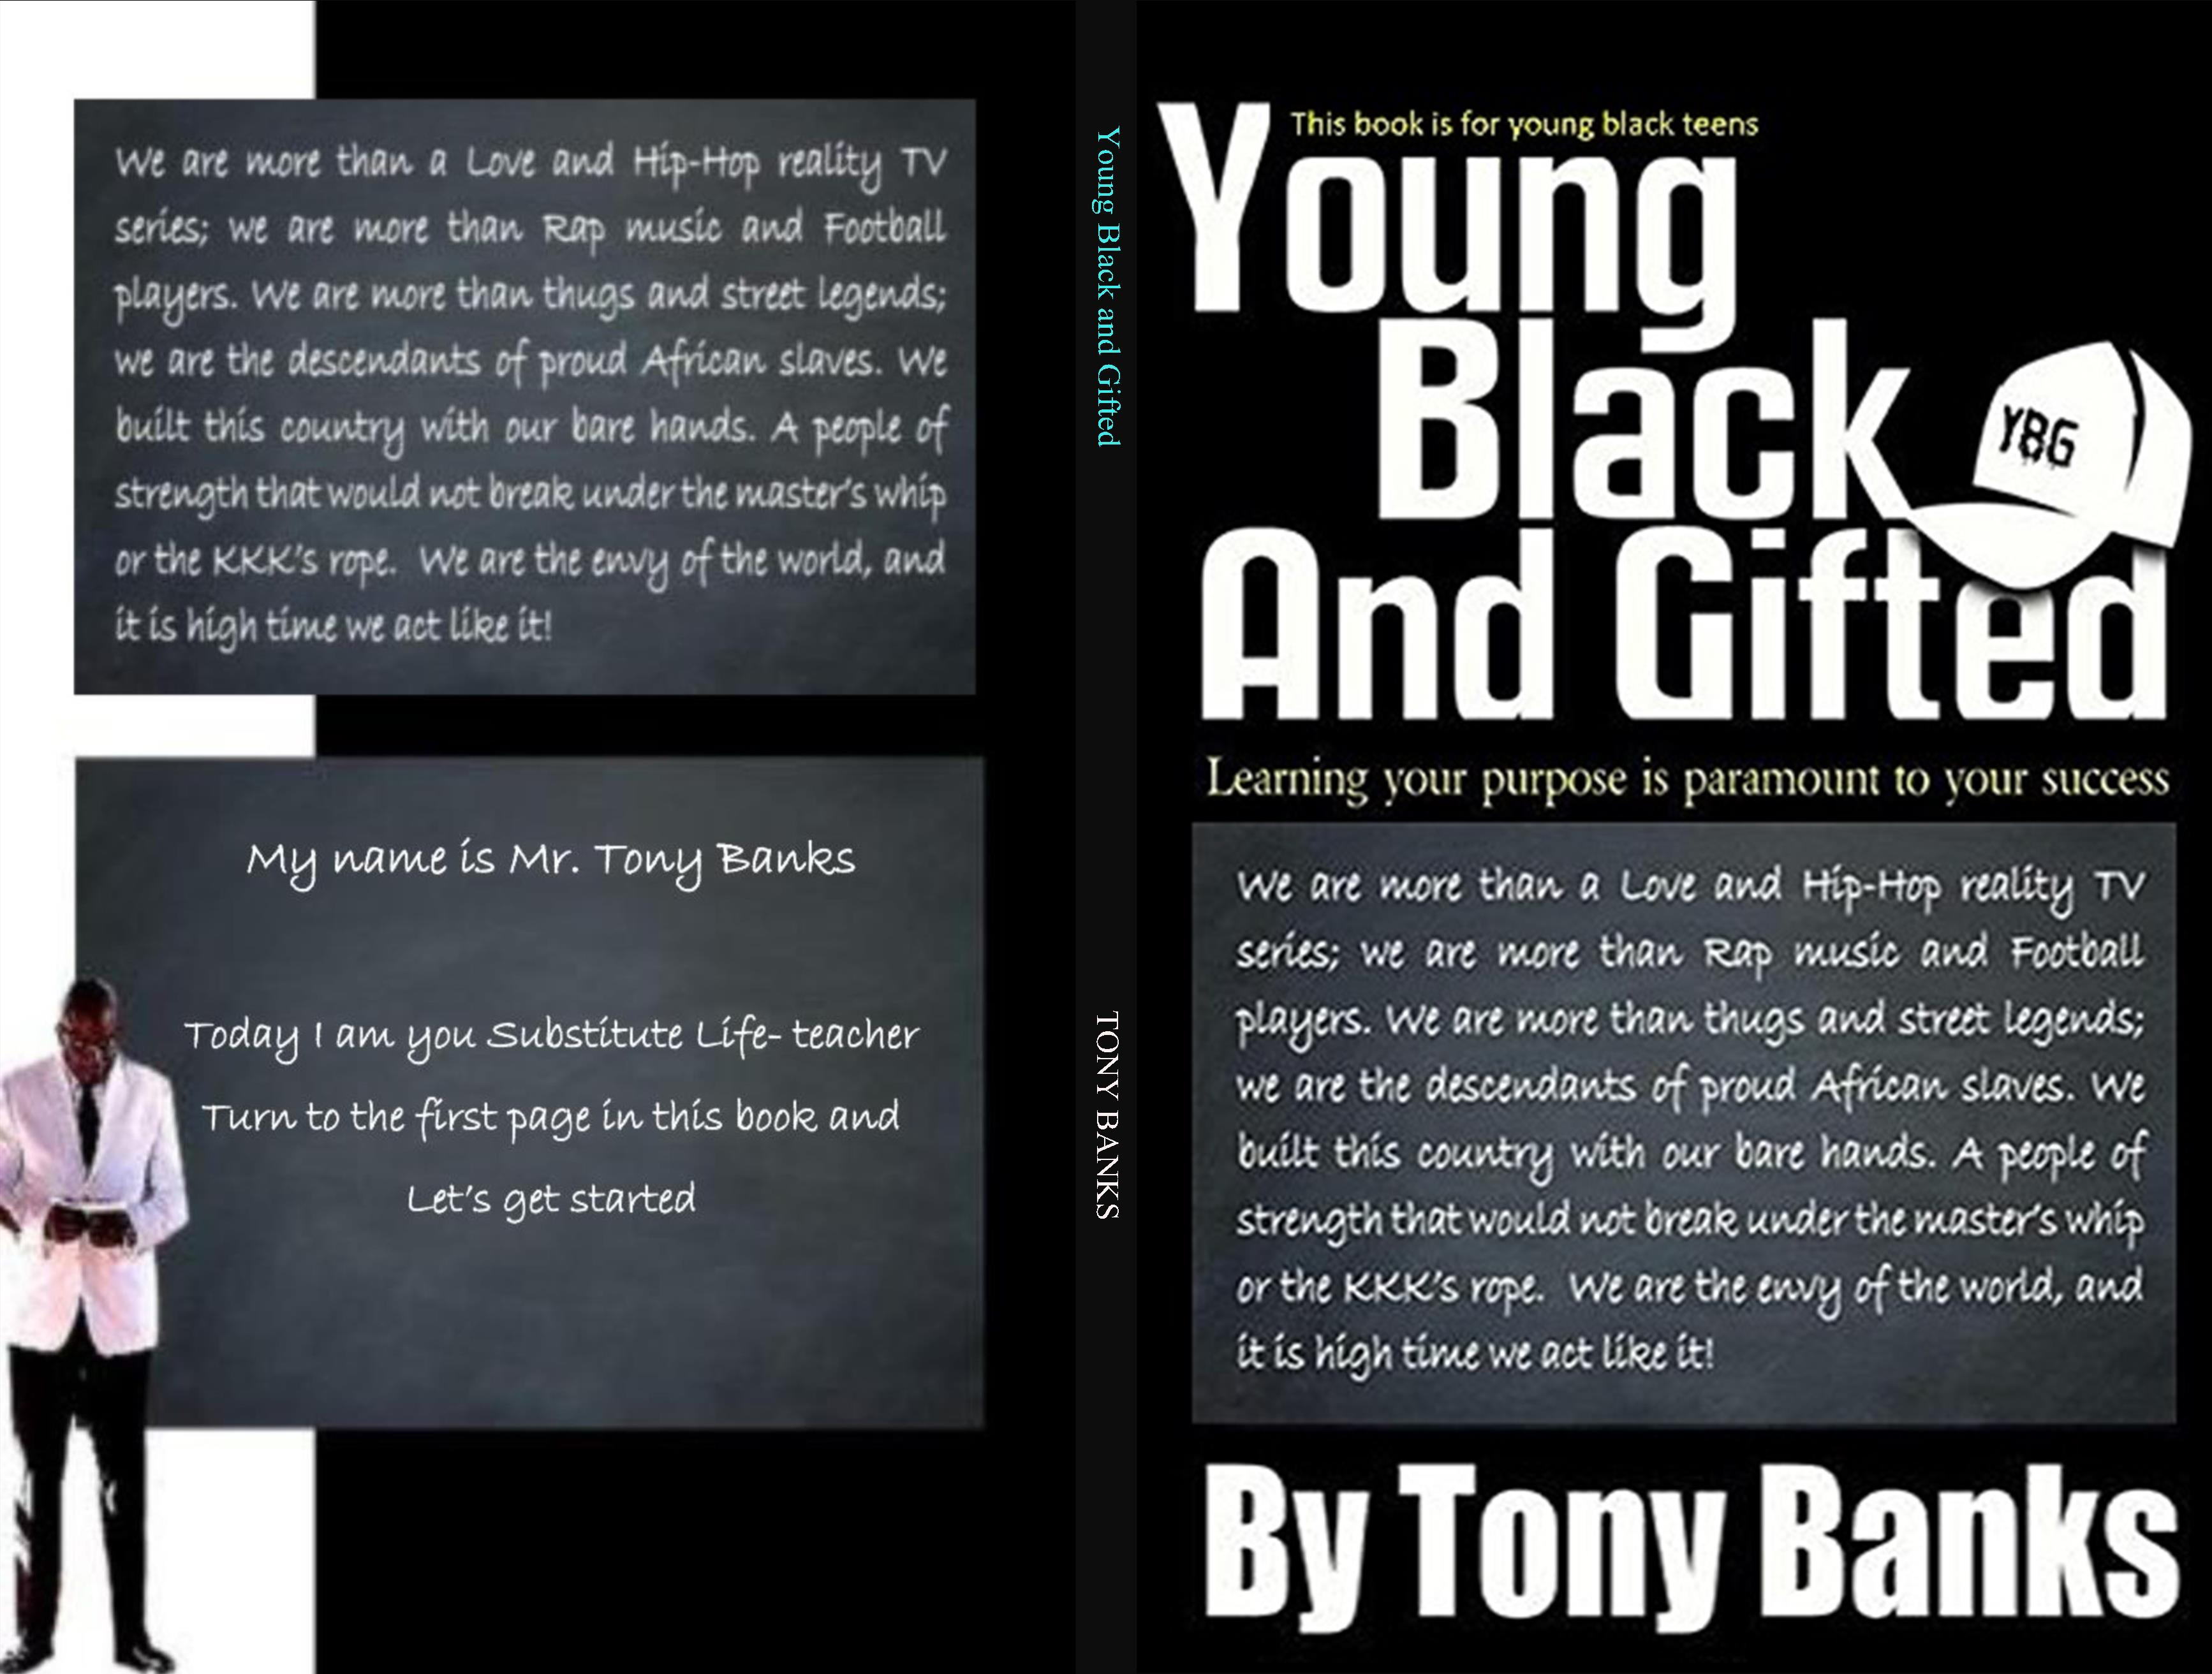 Young Black and Gifted cover image